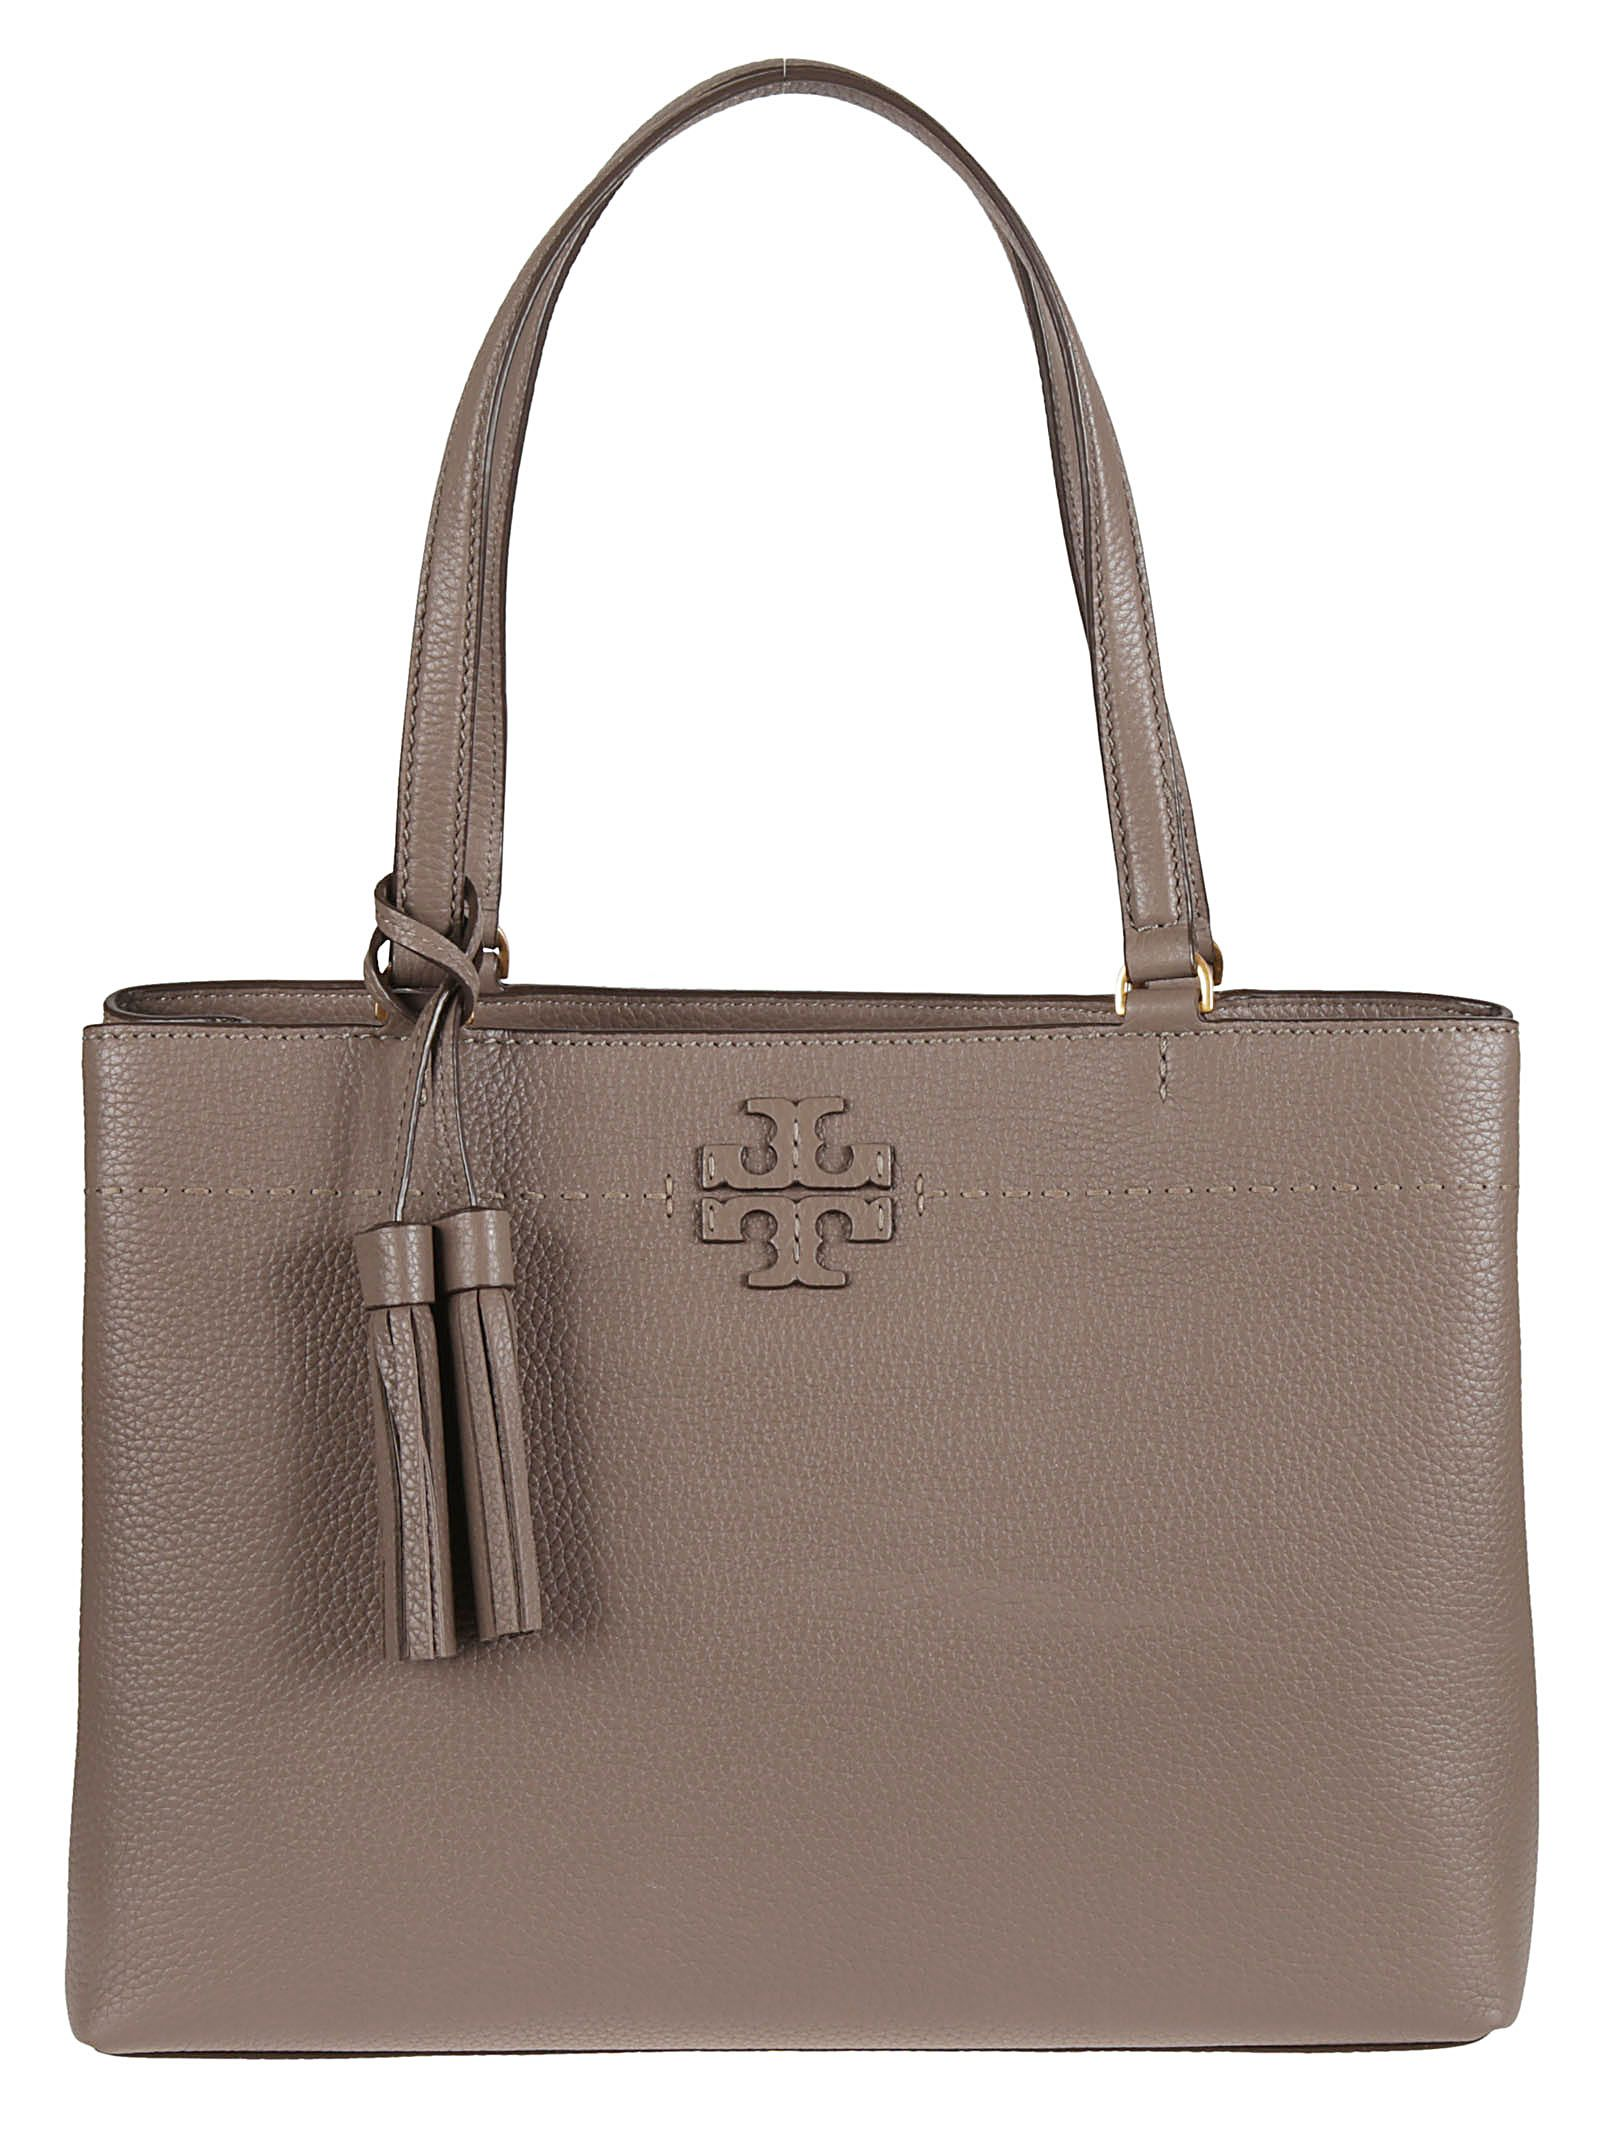 207cb3157a90 Tory Burch Tory Burch Mcgraw Triple Compartment Tote - Basic ...